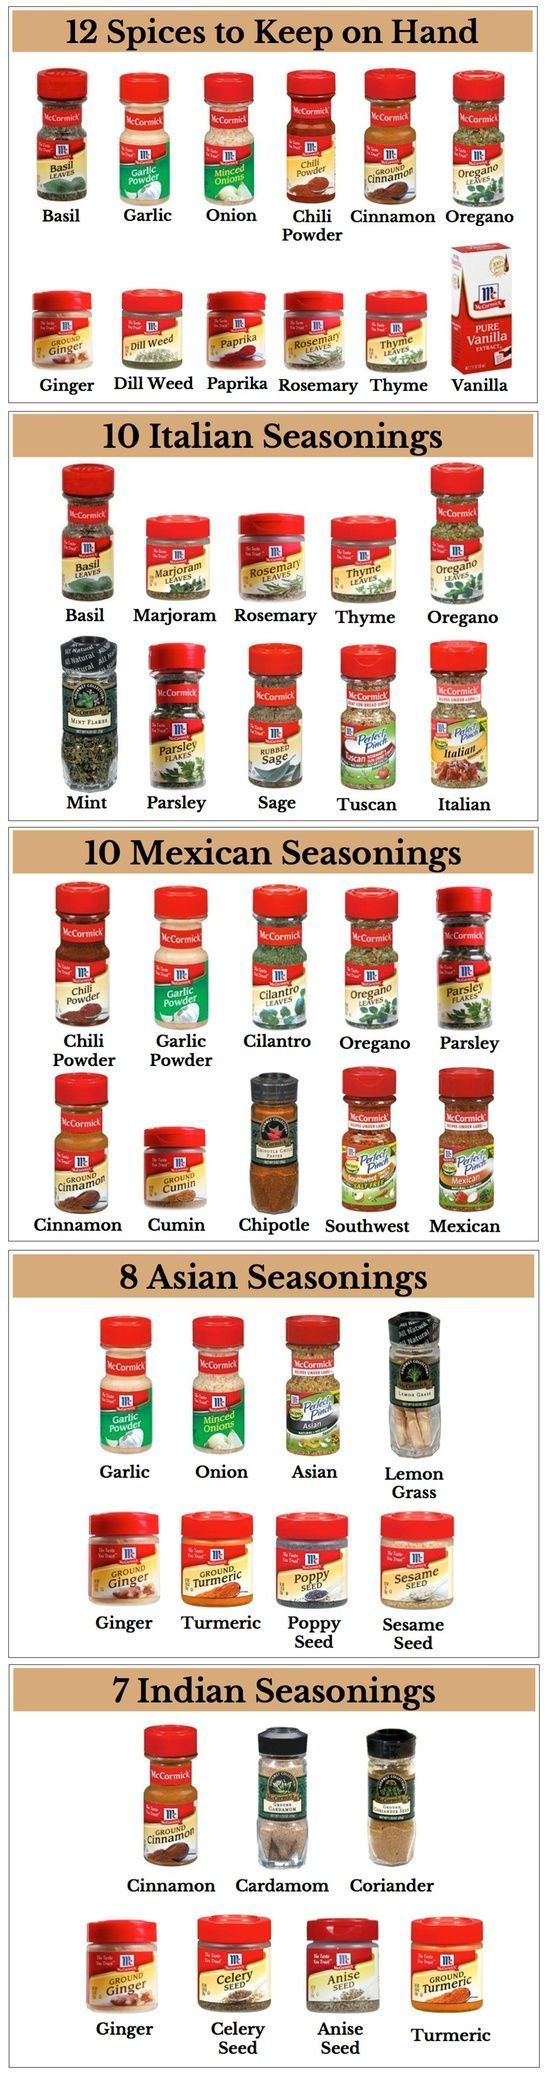 Spices to Keep on Hand - Love this breakdown!